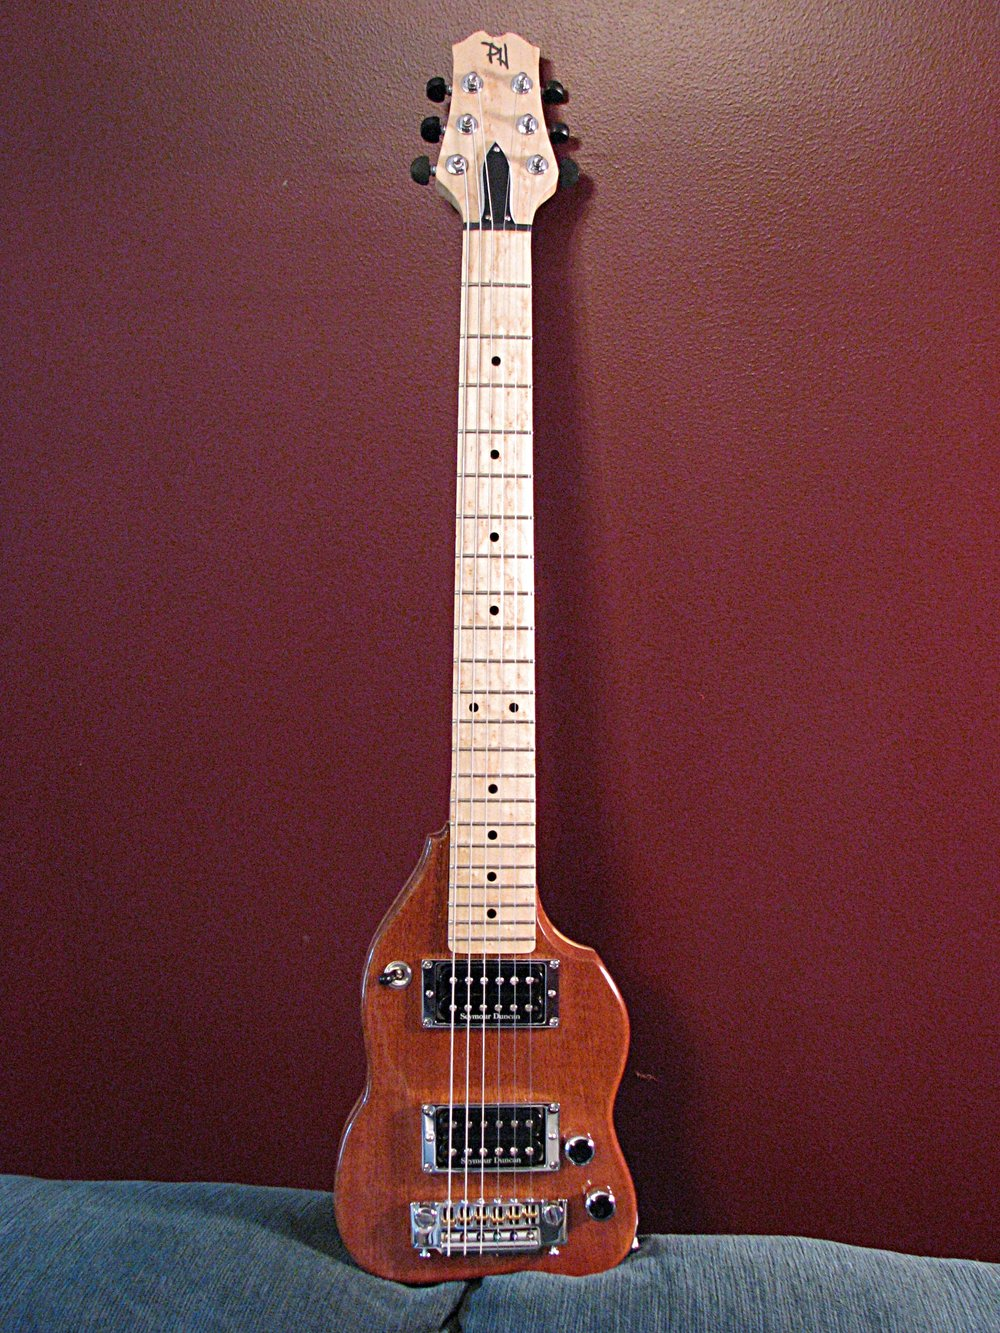 The Prototype Stage Travel Guitar